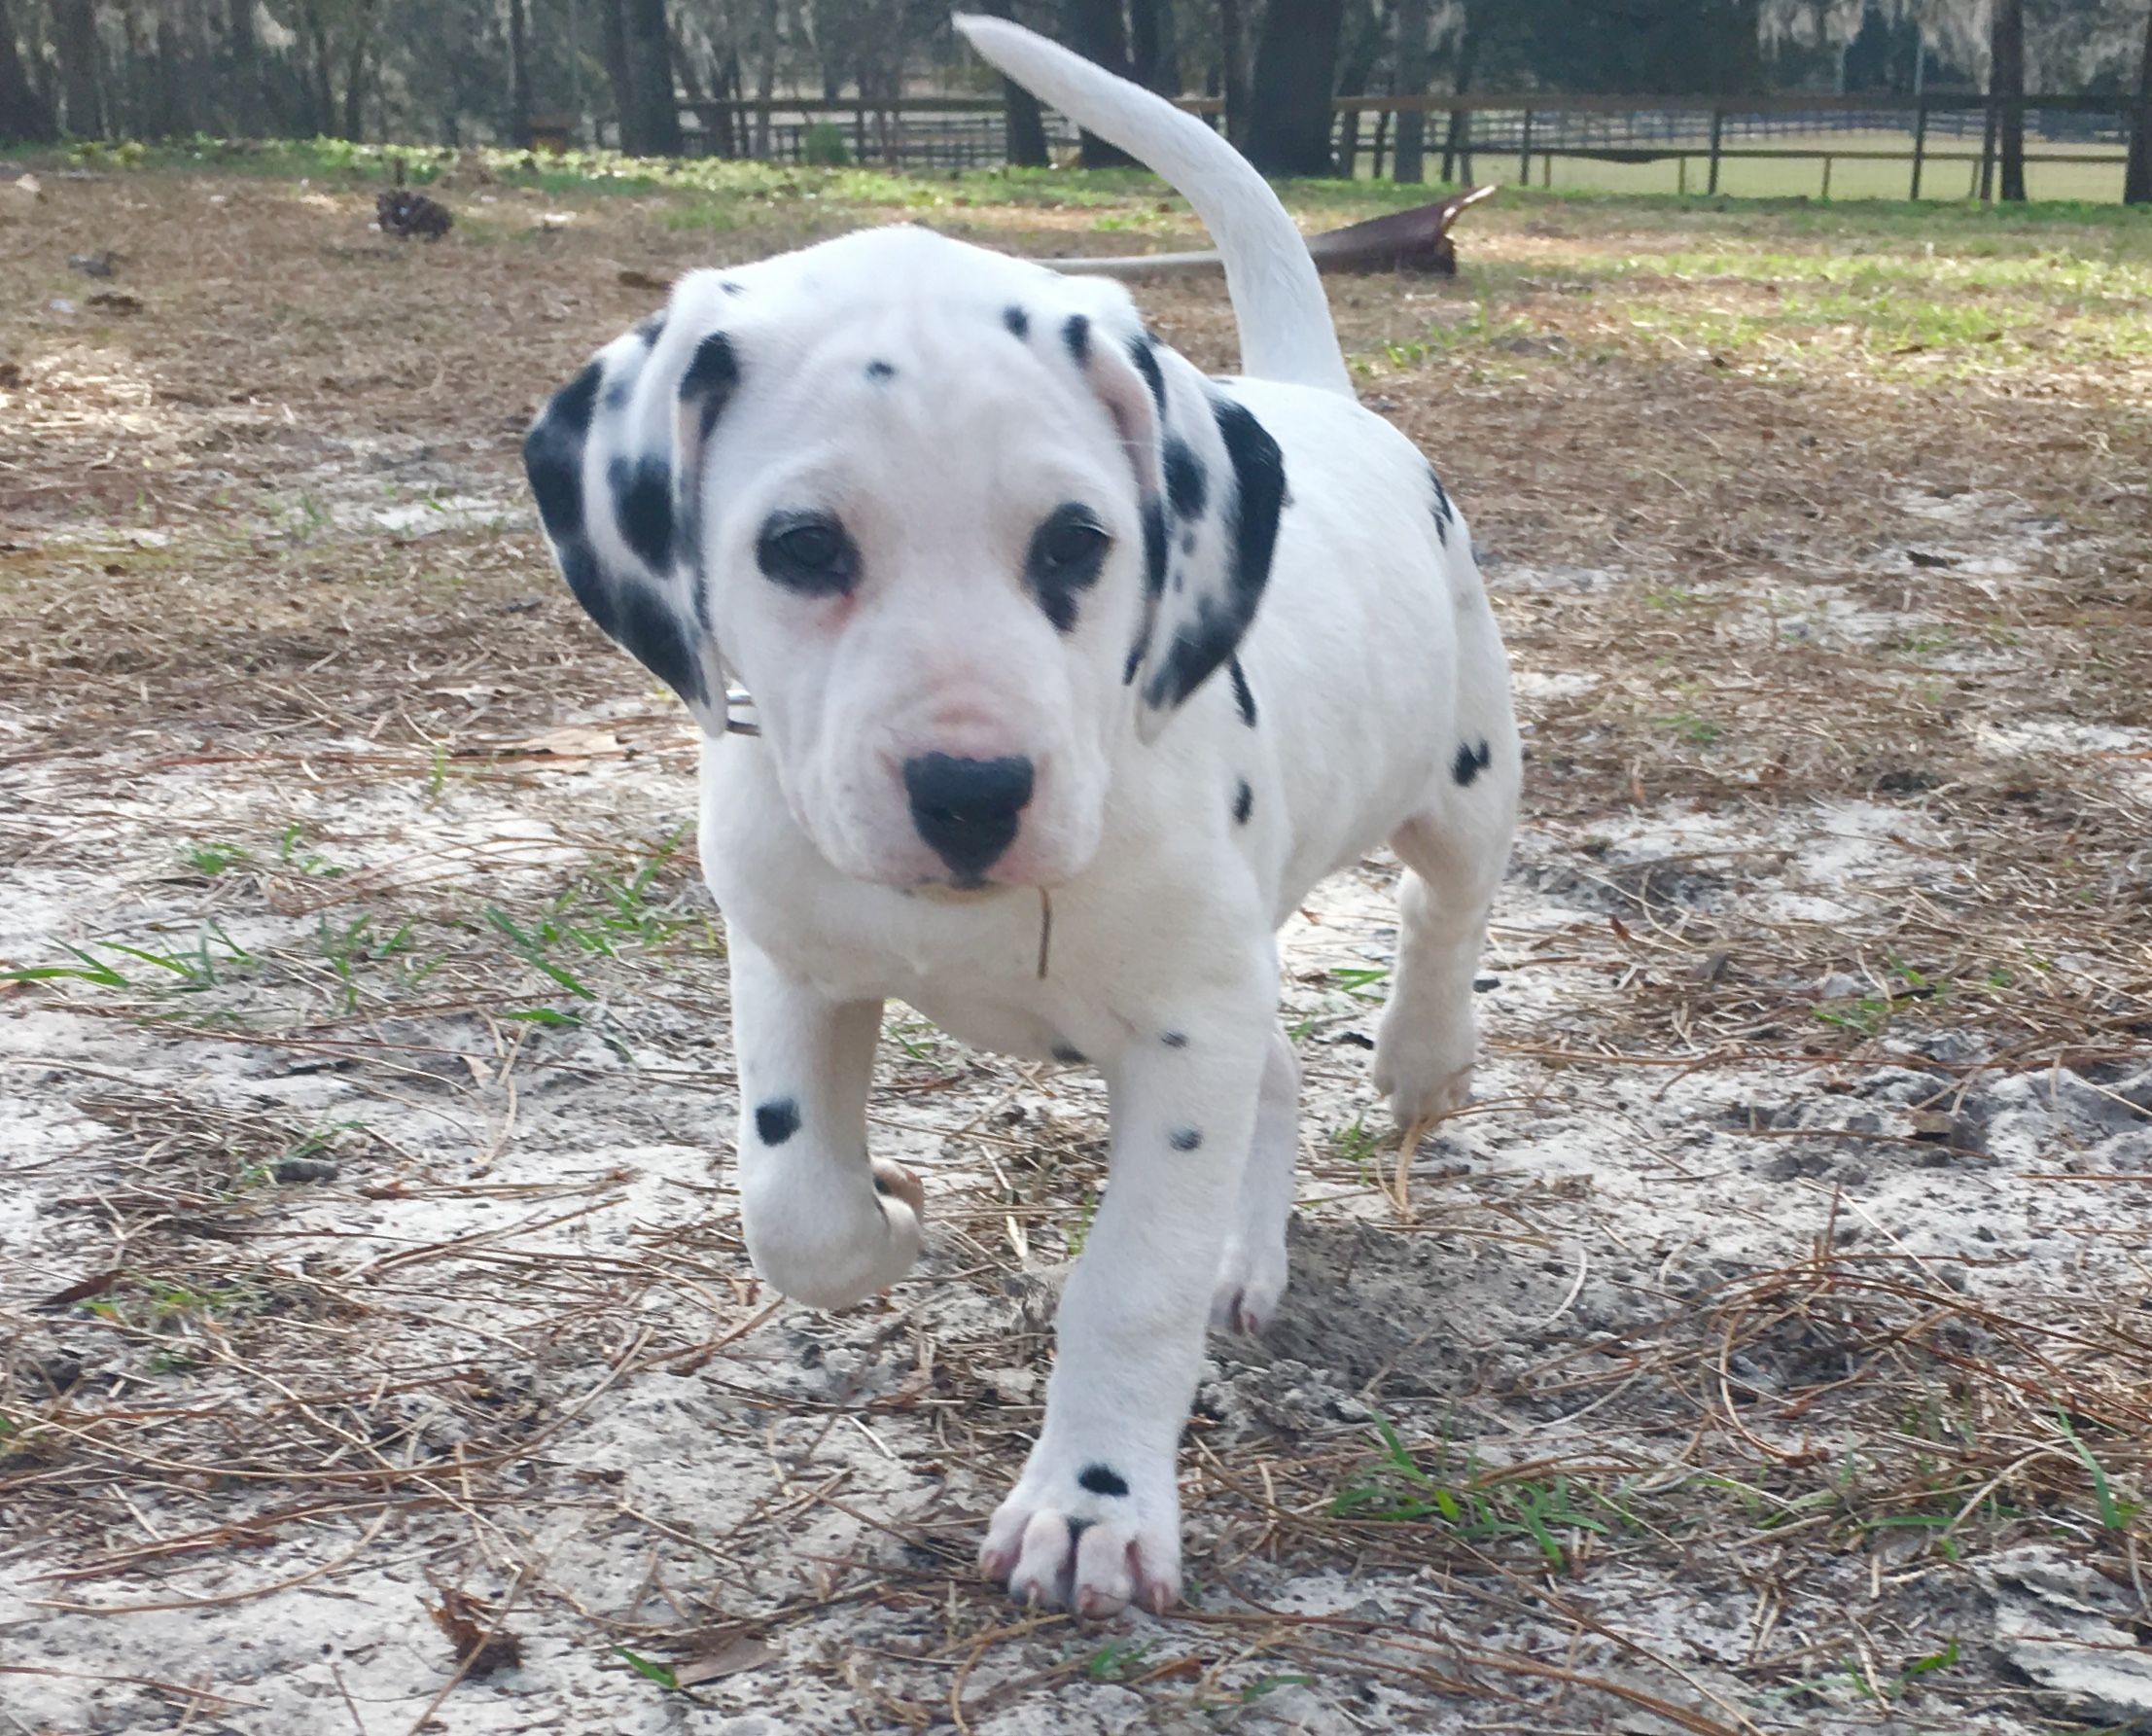 Pin by Penny Cuaron on Dalmatians Cute baby animals